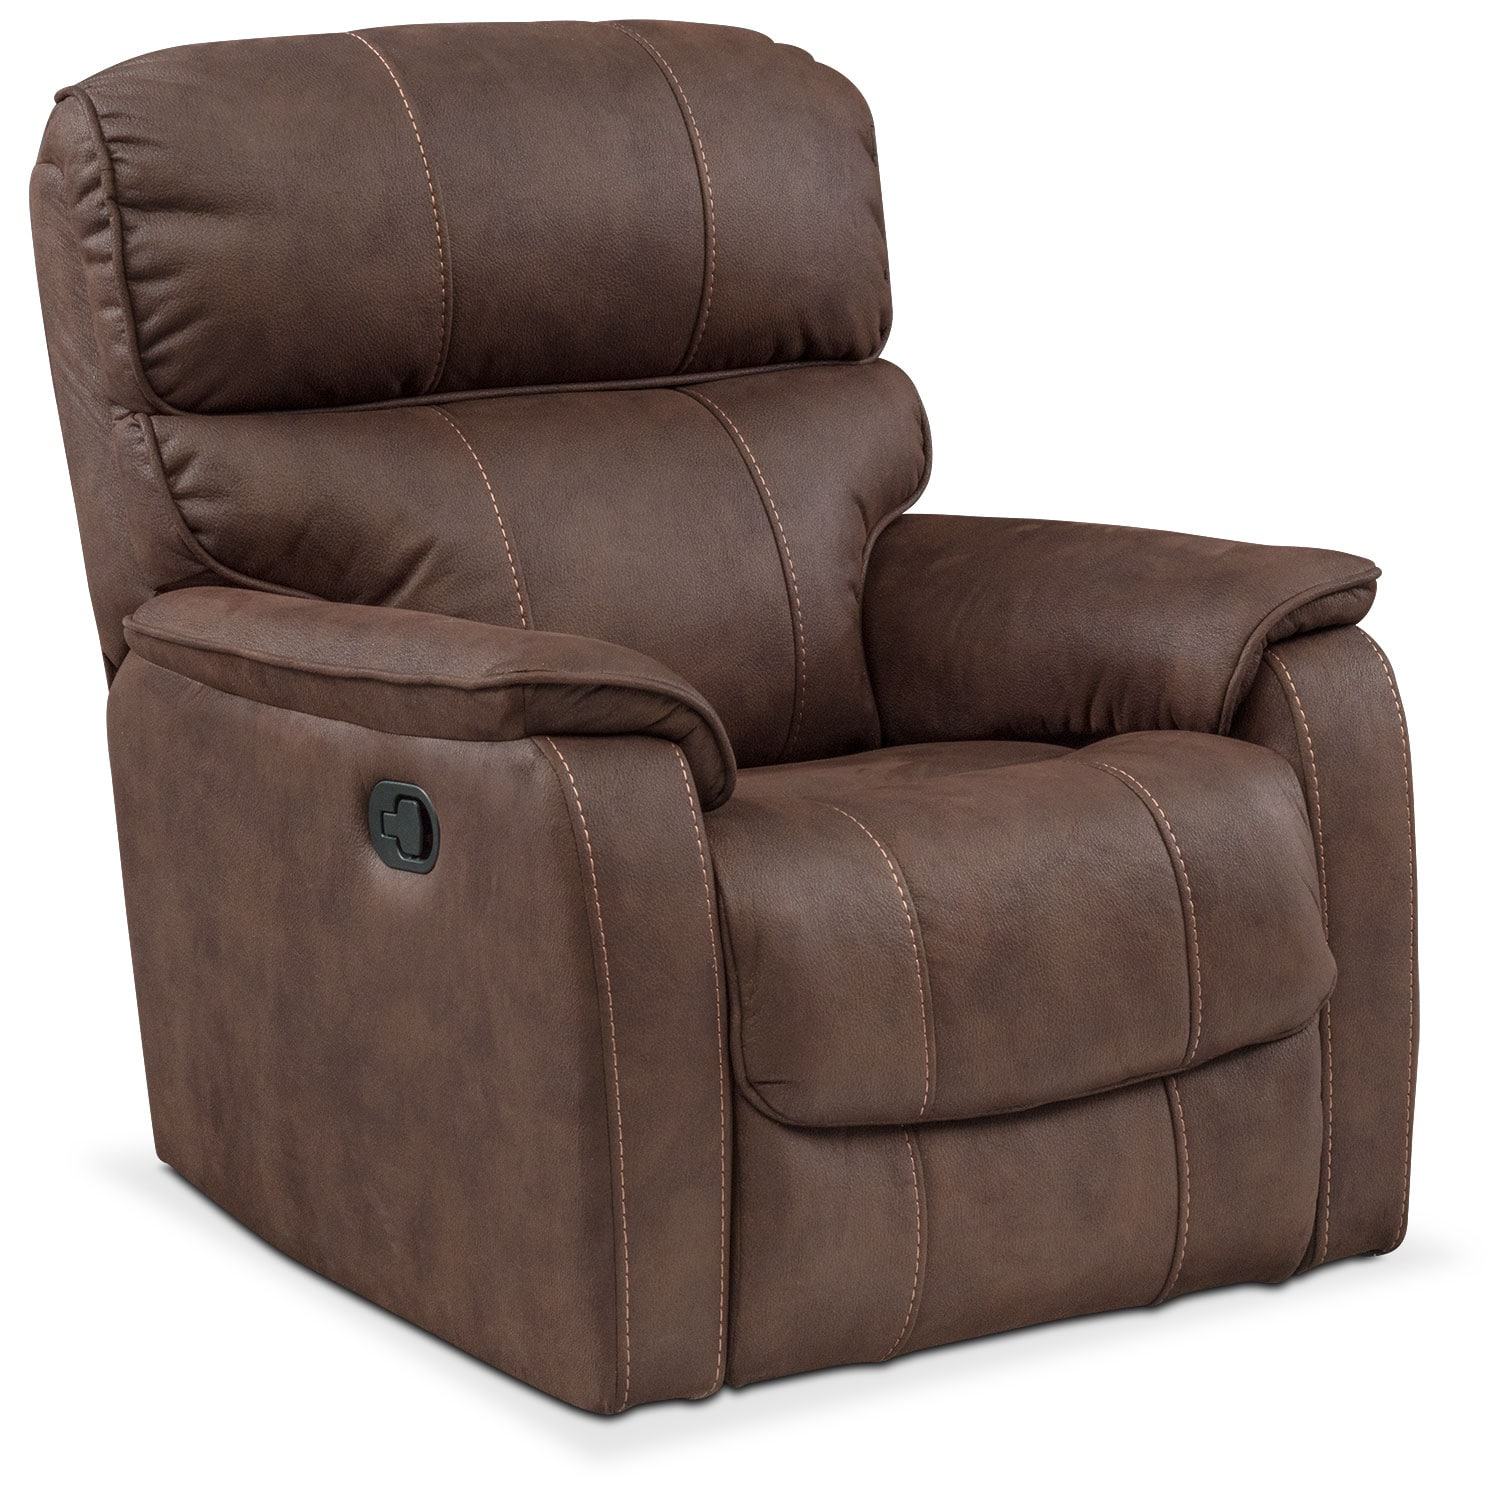 Living Room Furniture - Mondo Glider Recliner